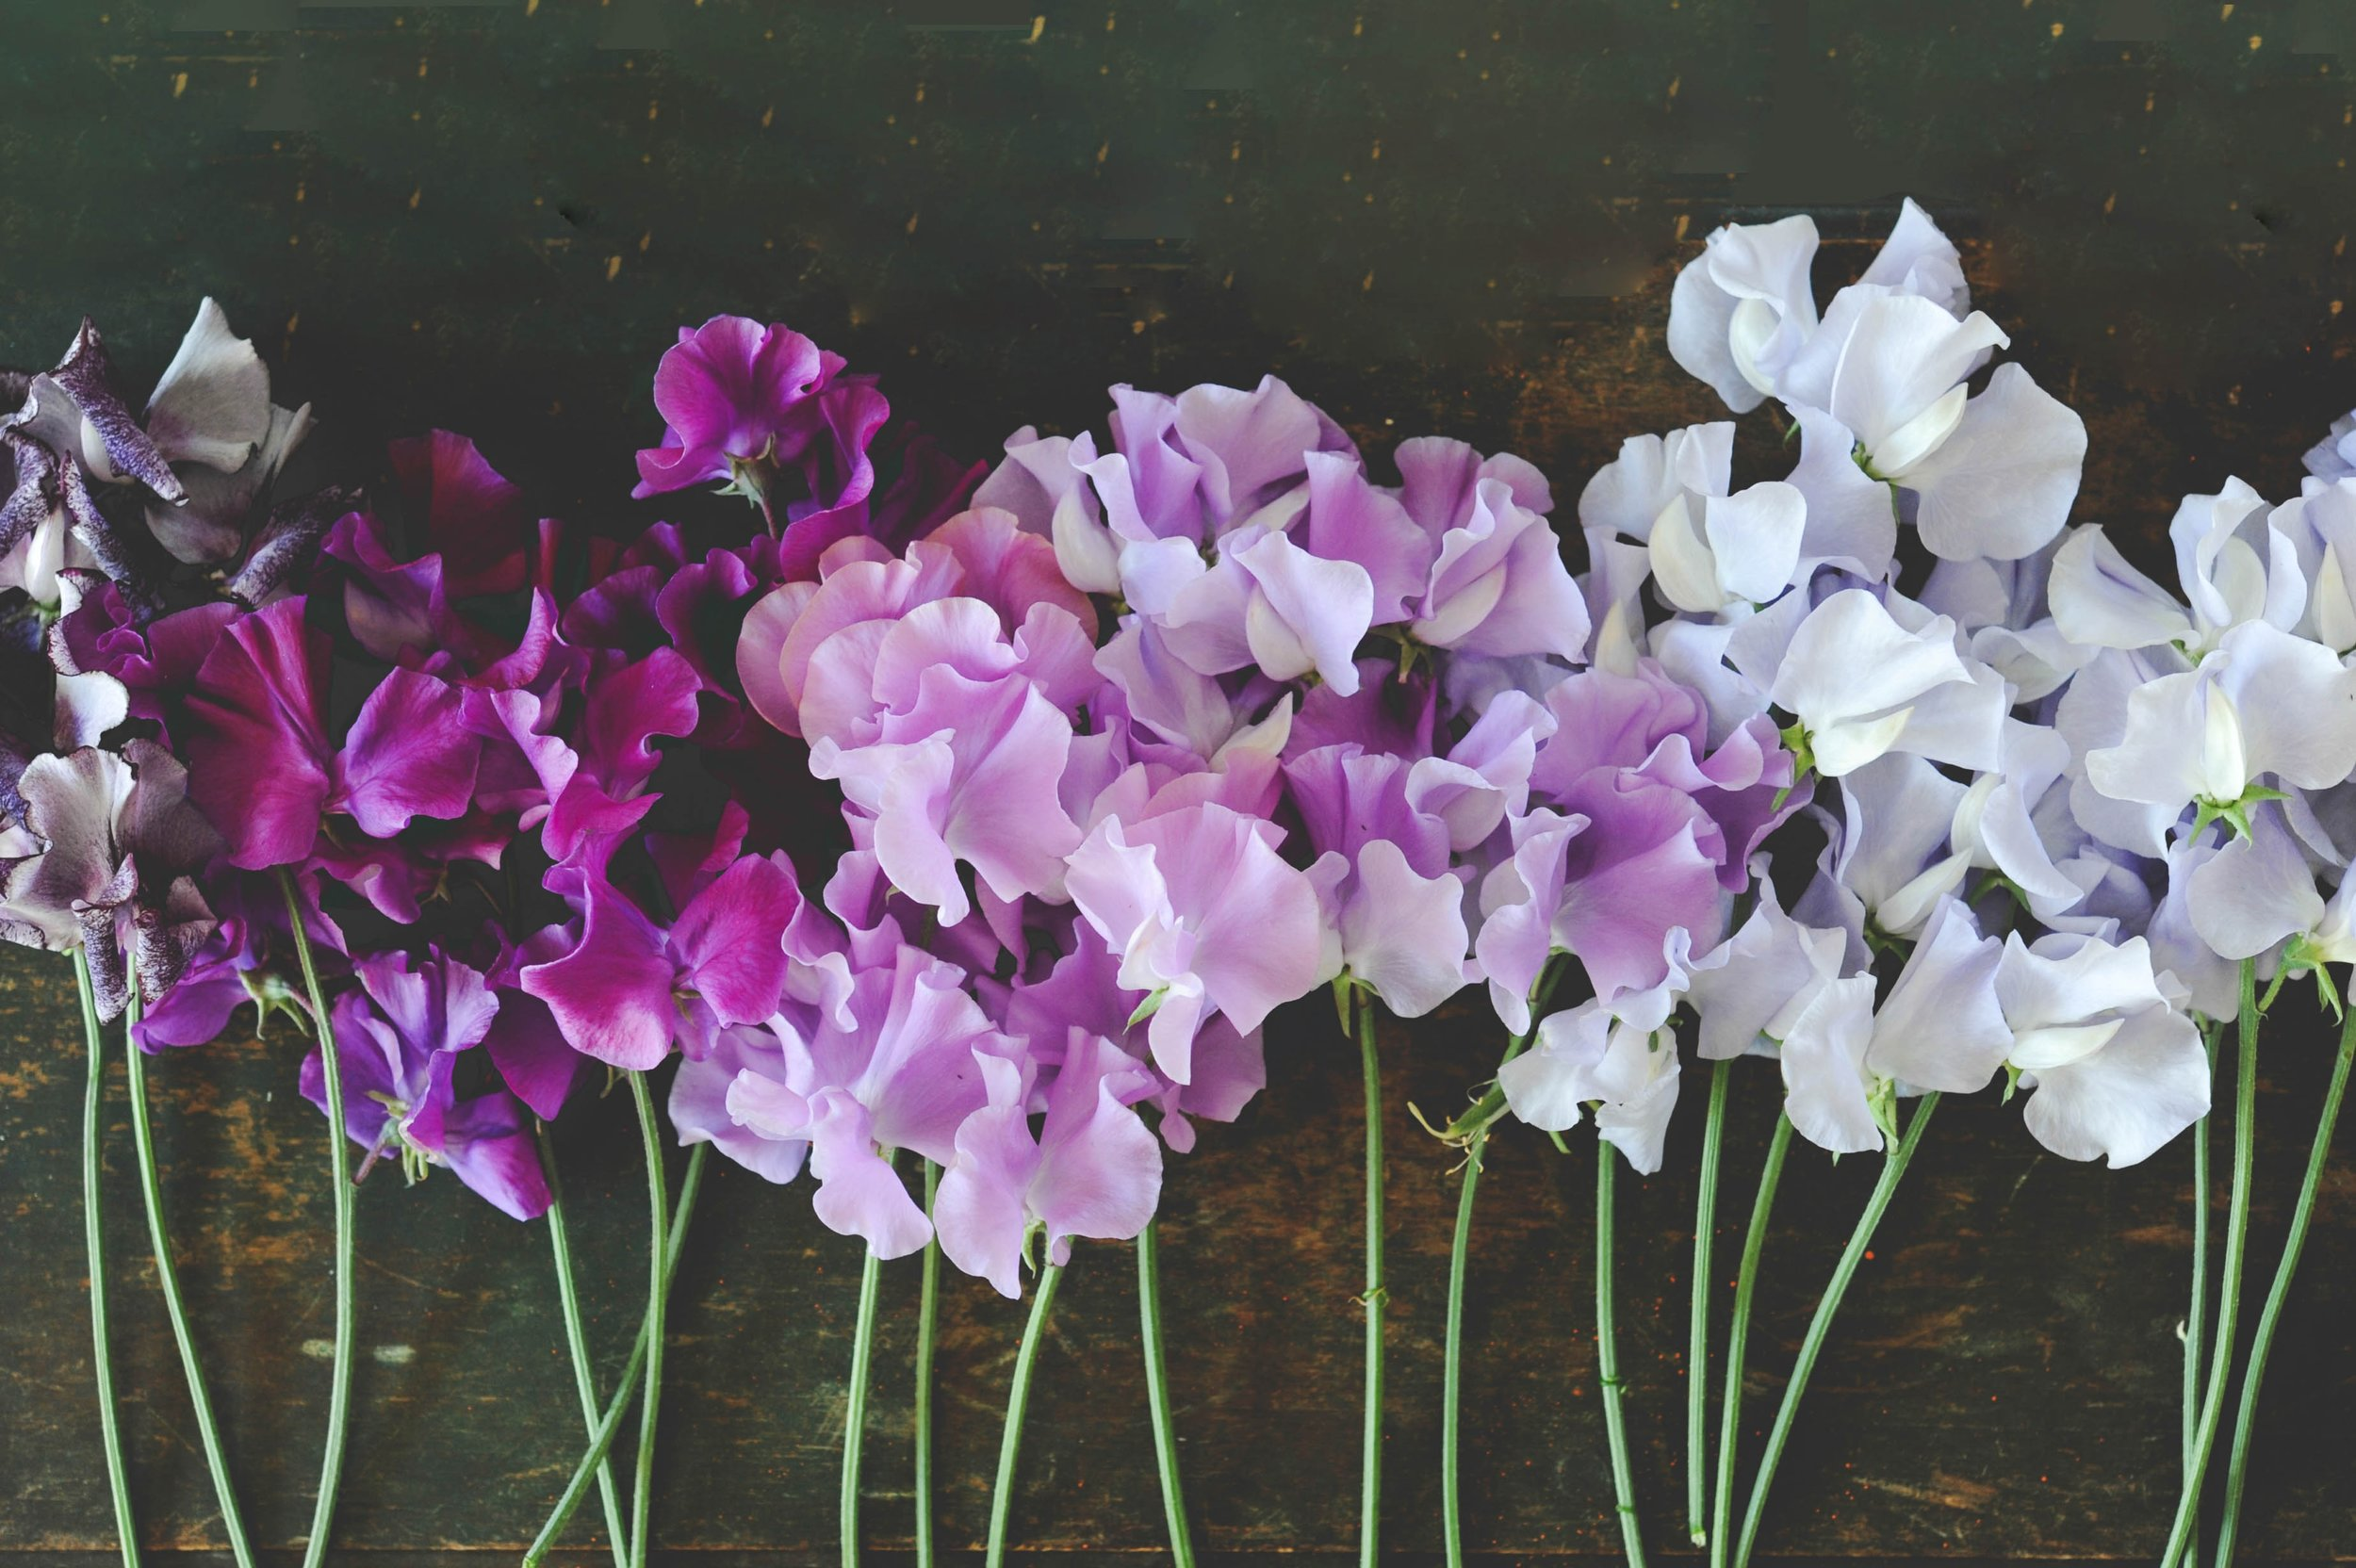 Sweet peas_Hilary Dahl_Encyclopedia Botanica.jpg